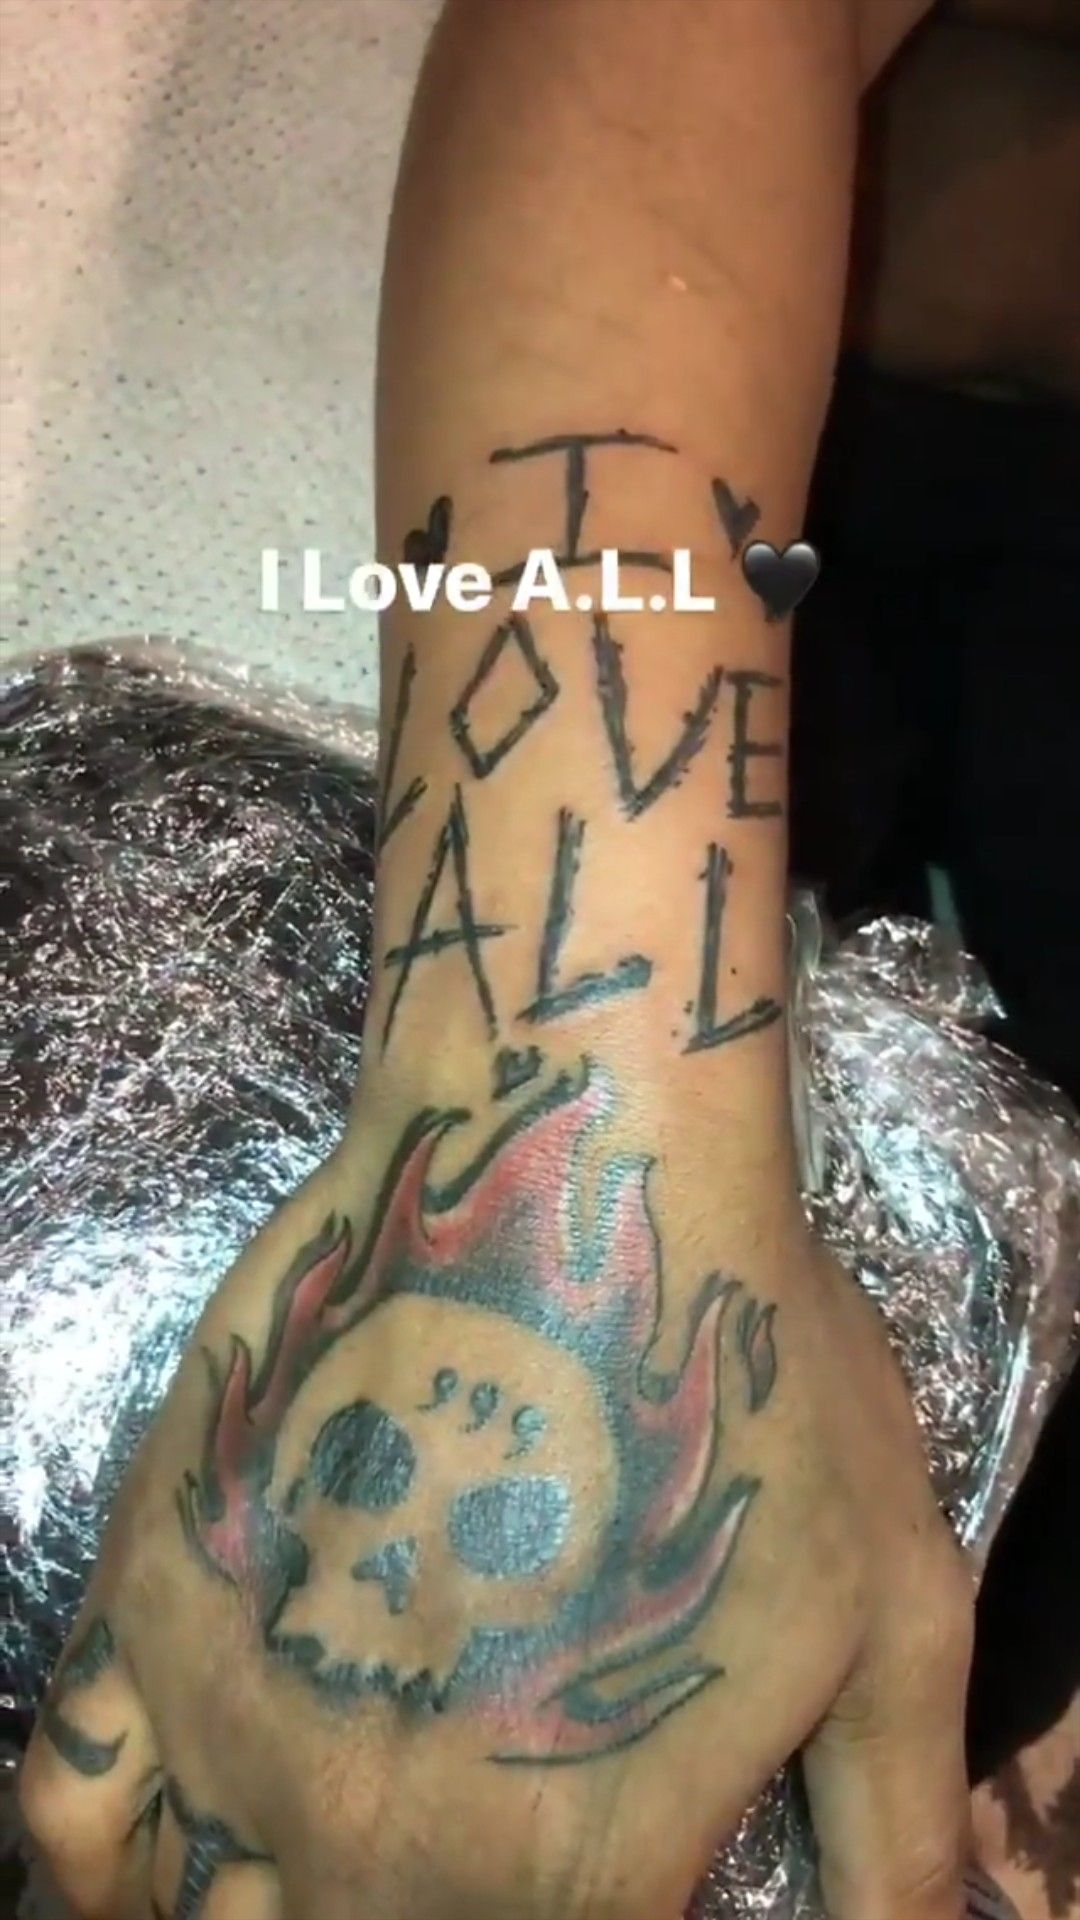 Juices wrld new tattoo on his left arm, from juice's story